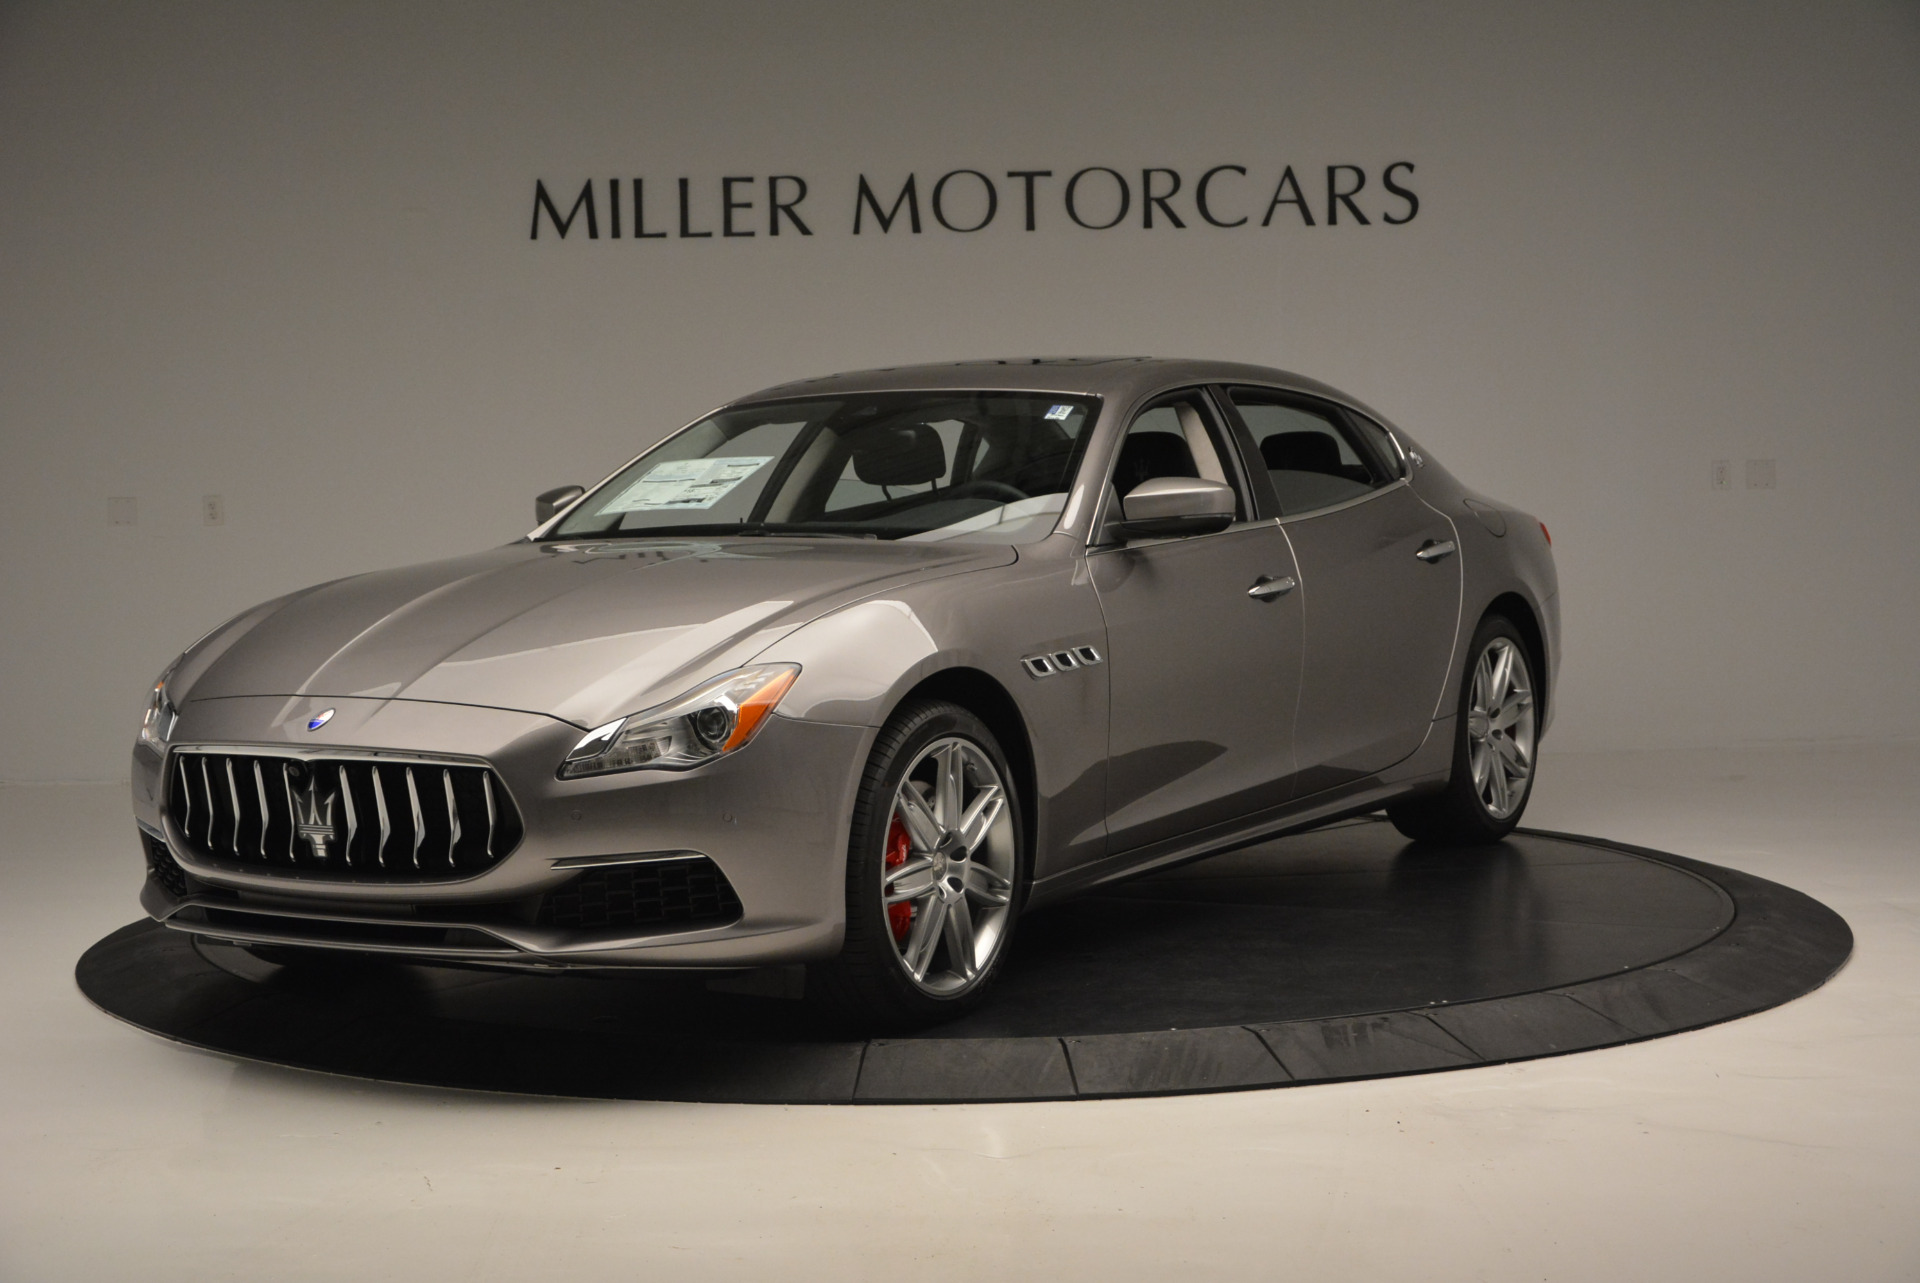 New 2017 Maserati Quattroporte S Q4 GranLusso for sale Sold at Alfa Romeo of Greenwich in Greenwich CT 06830 1